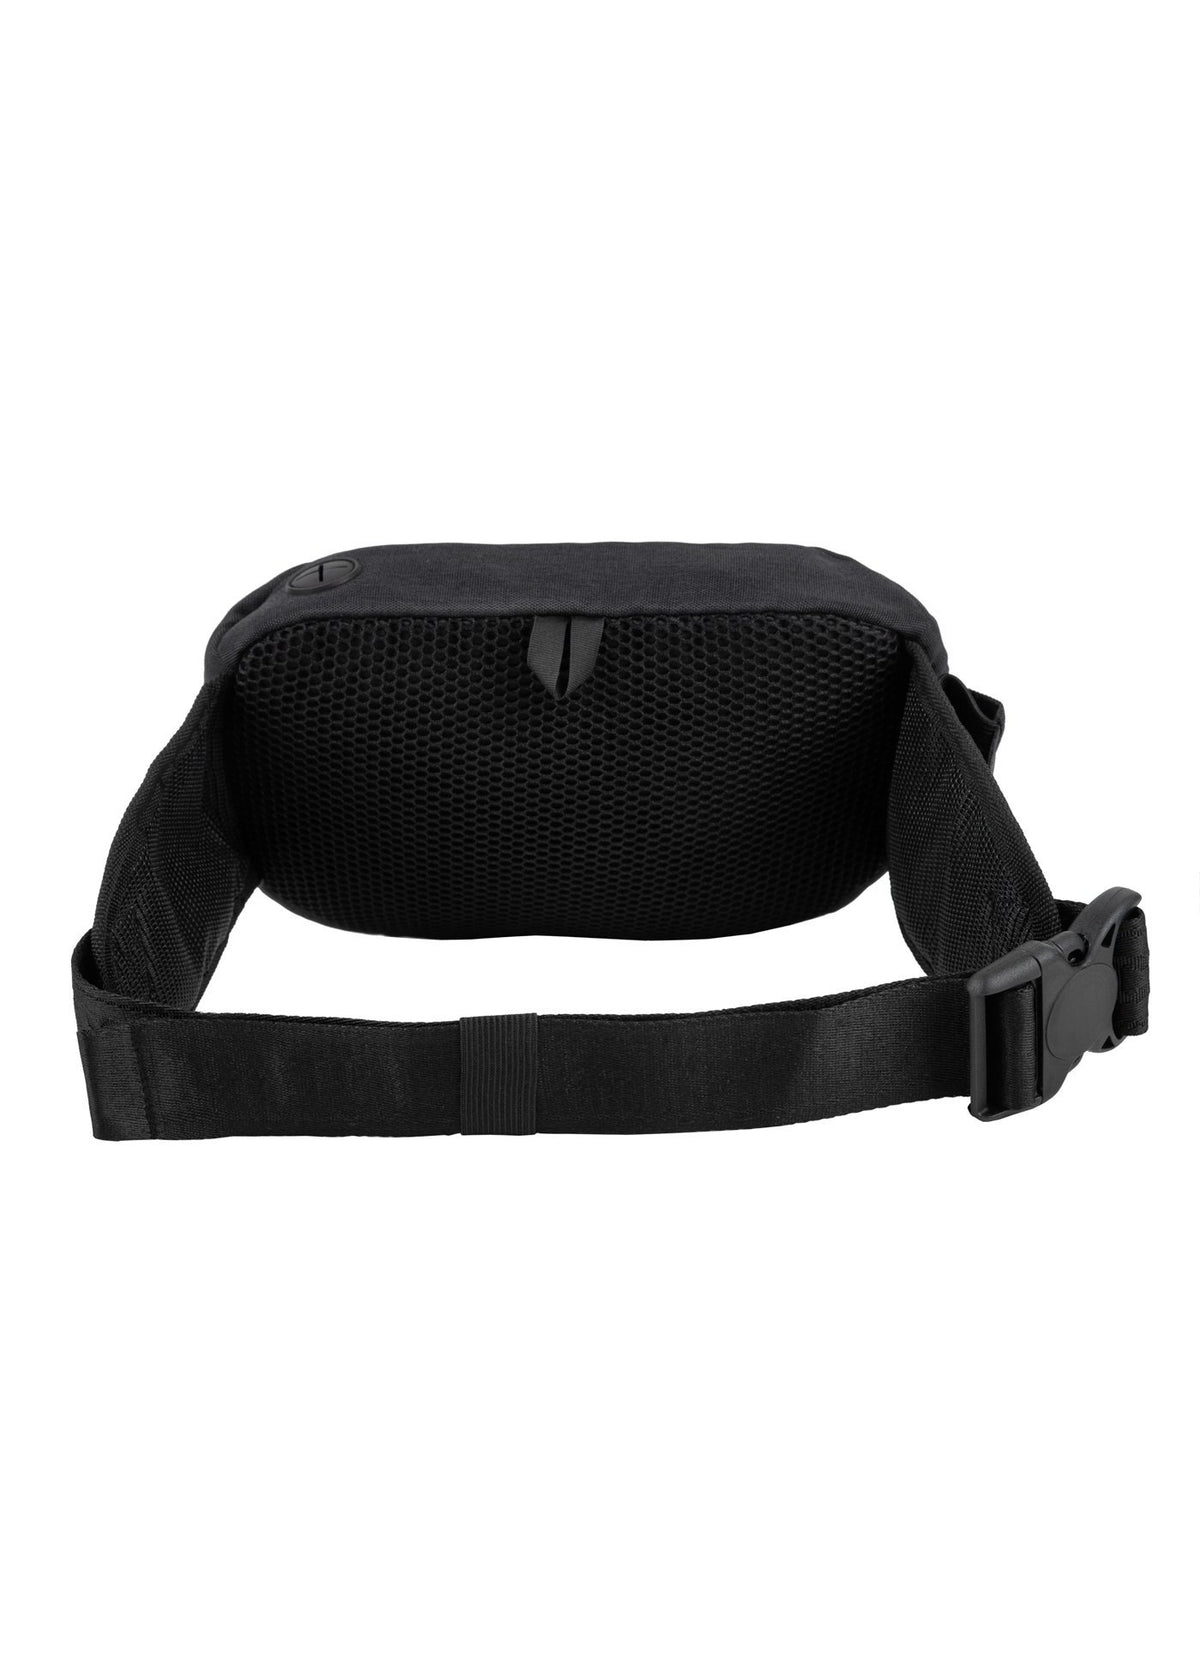 WAISTBAG PITBULL R BLACK - Pitbull West Coast U.S.A.